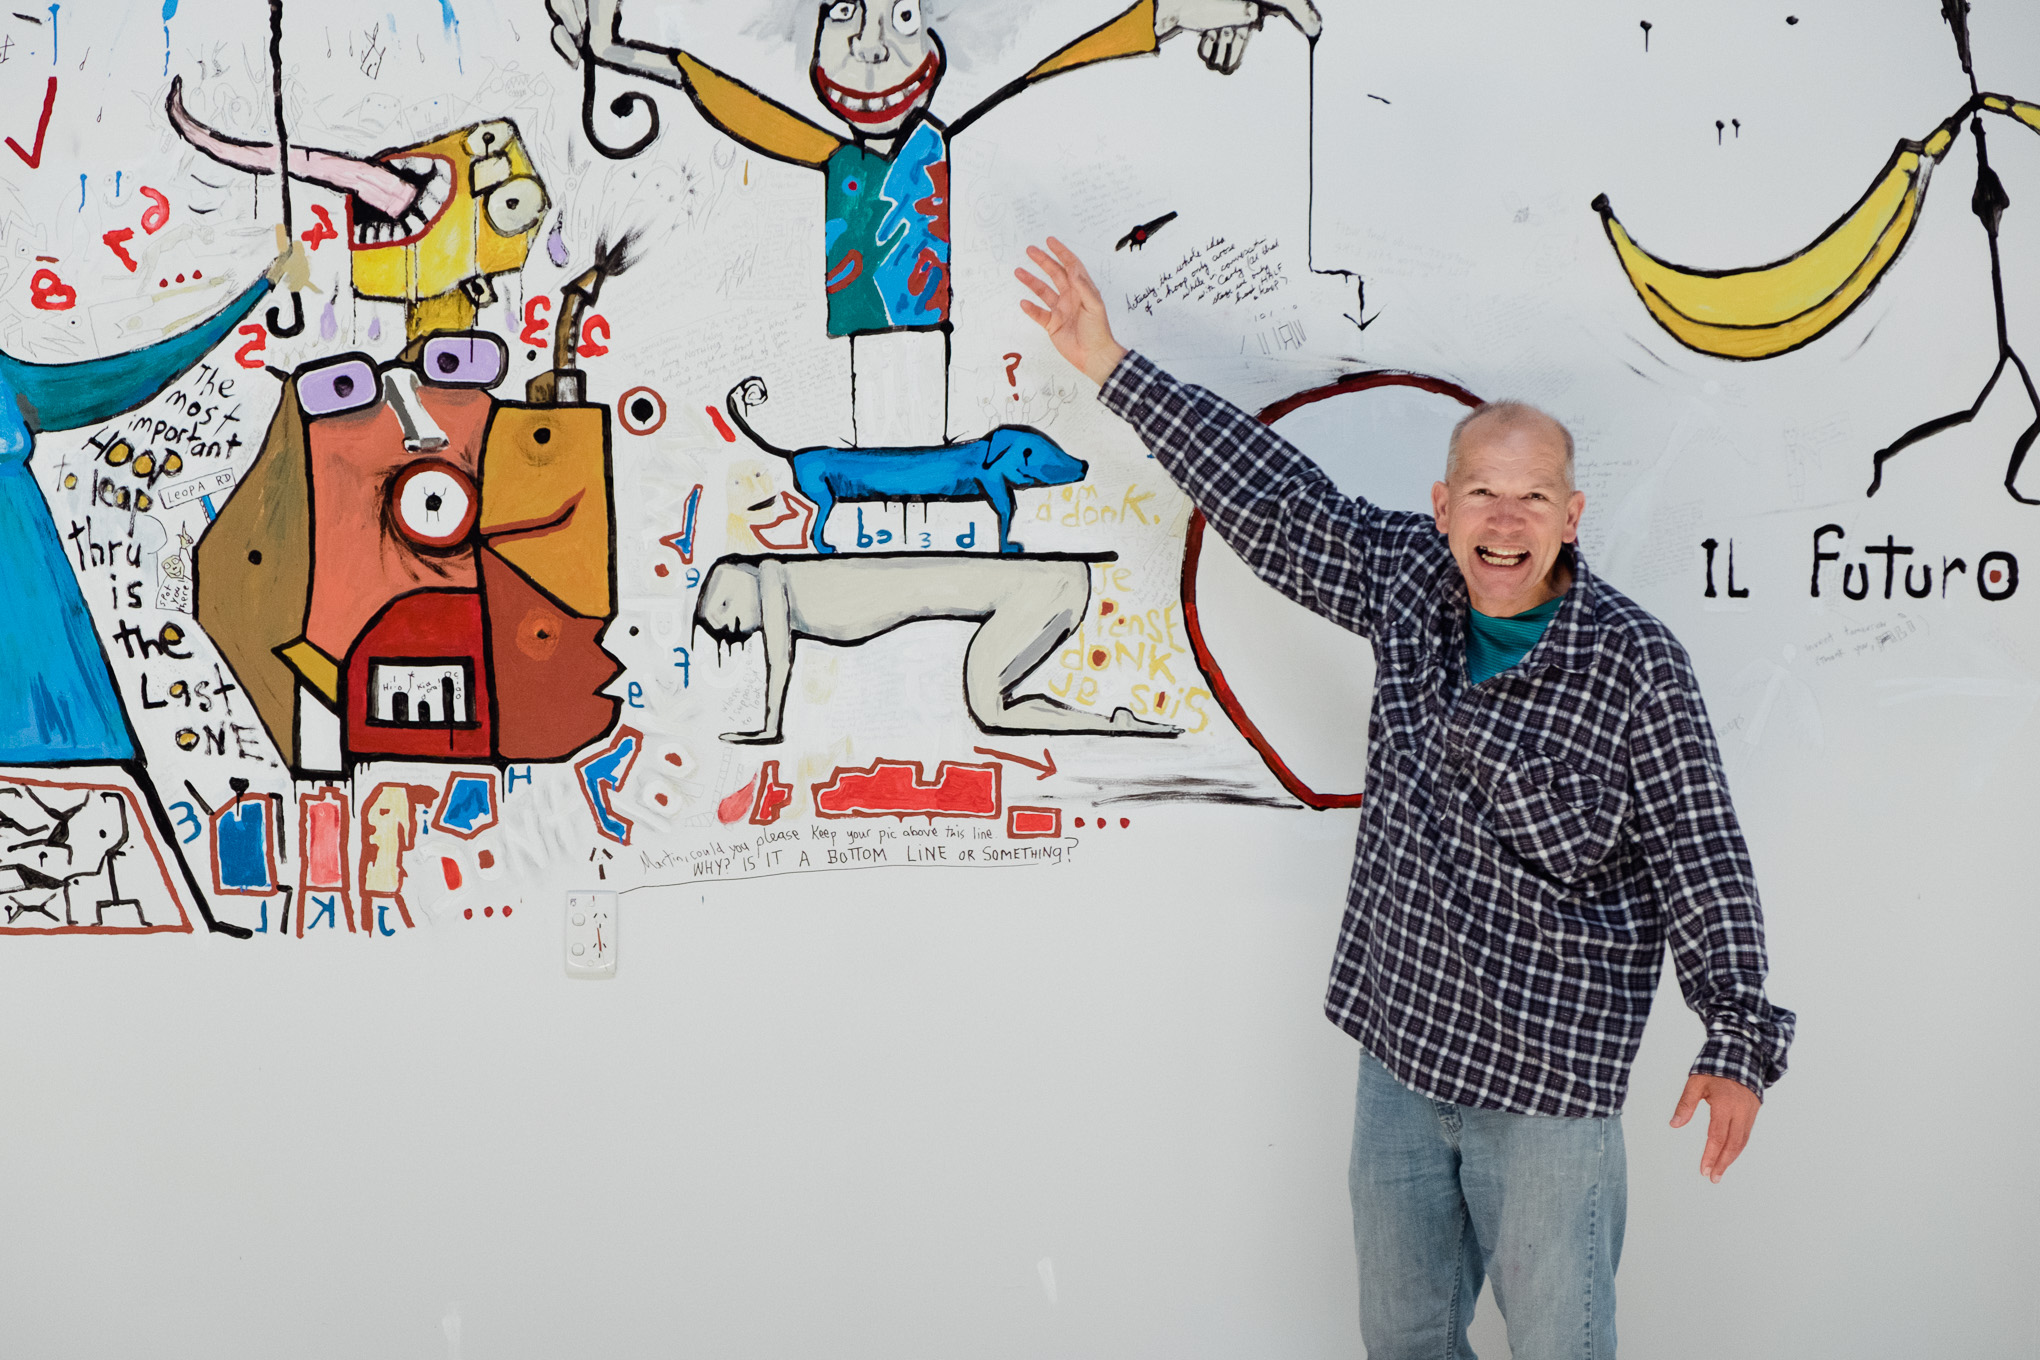 A sneaky peek of the finished mural, Martin looks pretty chuffed! Come into 3Mile to see it all!